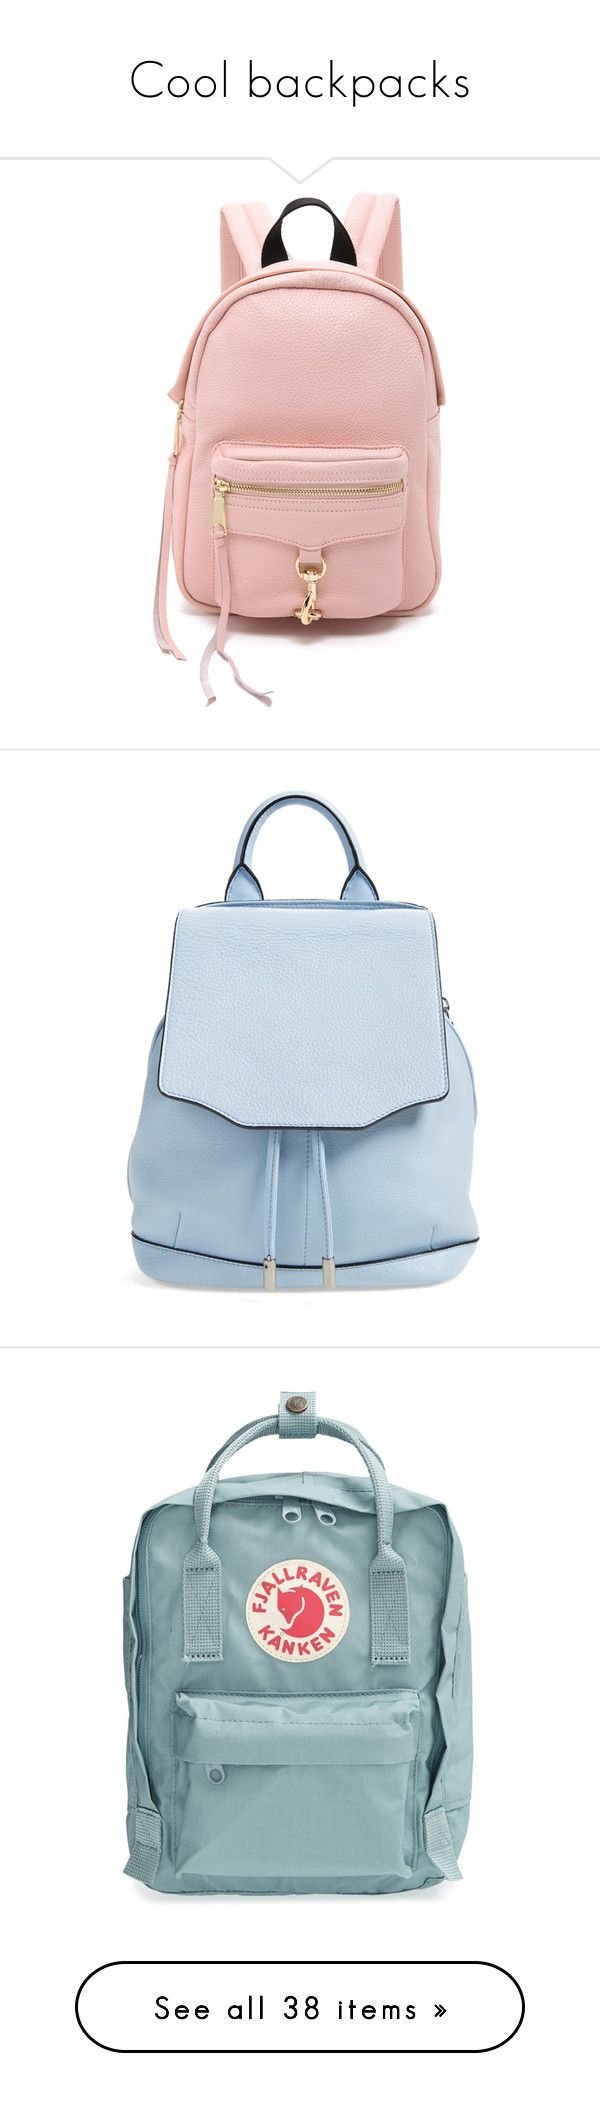 """Cool backpacks"" by gmoney21 ❤ liked on Polyvore featuring bags, backpacks, backpack, baby pink, genuine leather backpack, leather zip backpack, pink backpack, rebecca minkoff backpack, pink mini backpack and light blue"